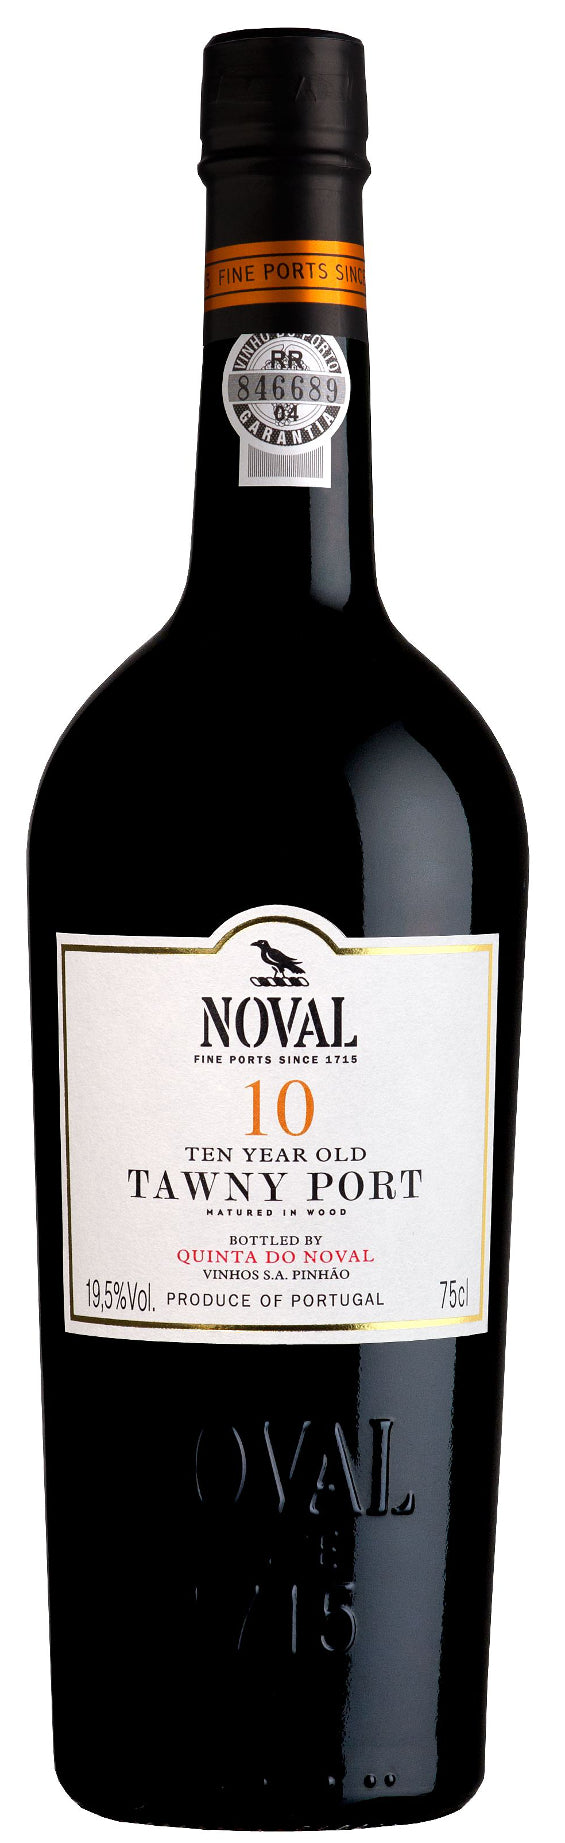 Noval 10 Years Old Tawny Port